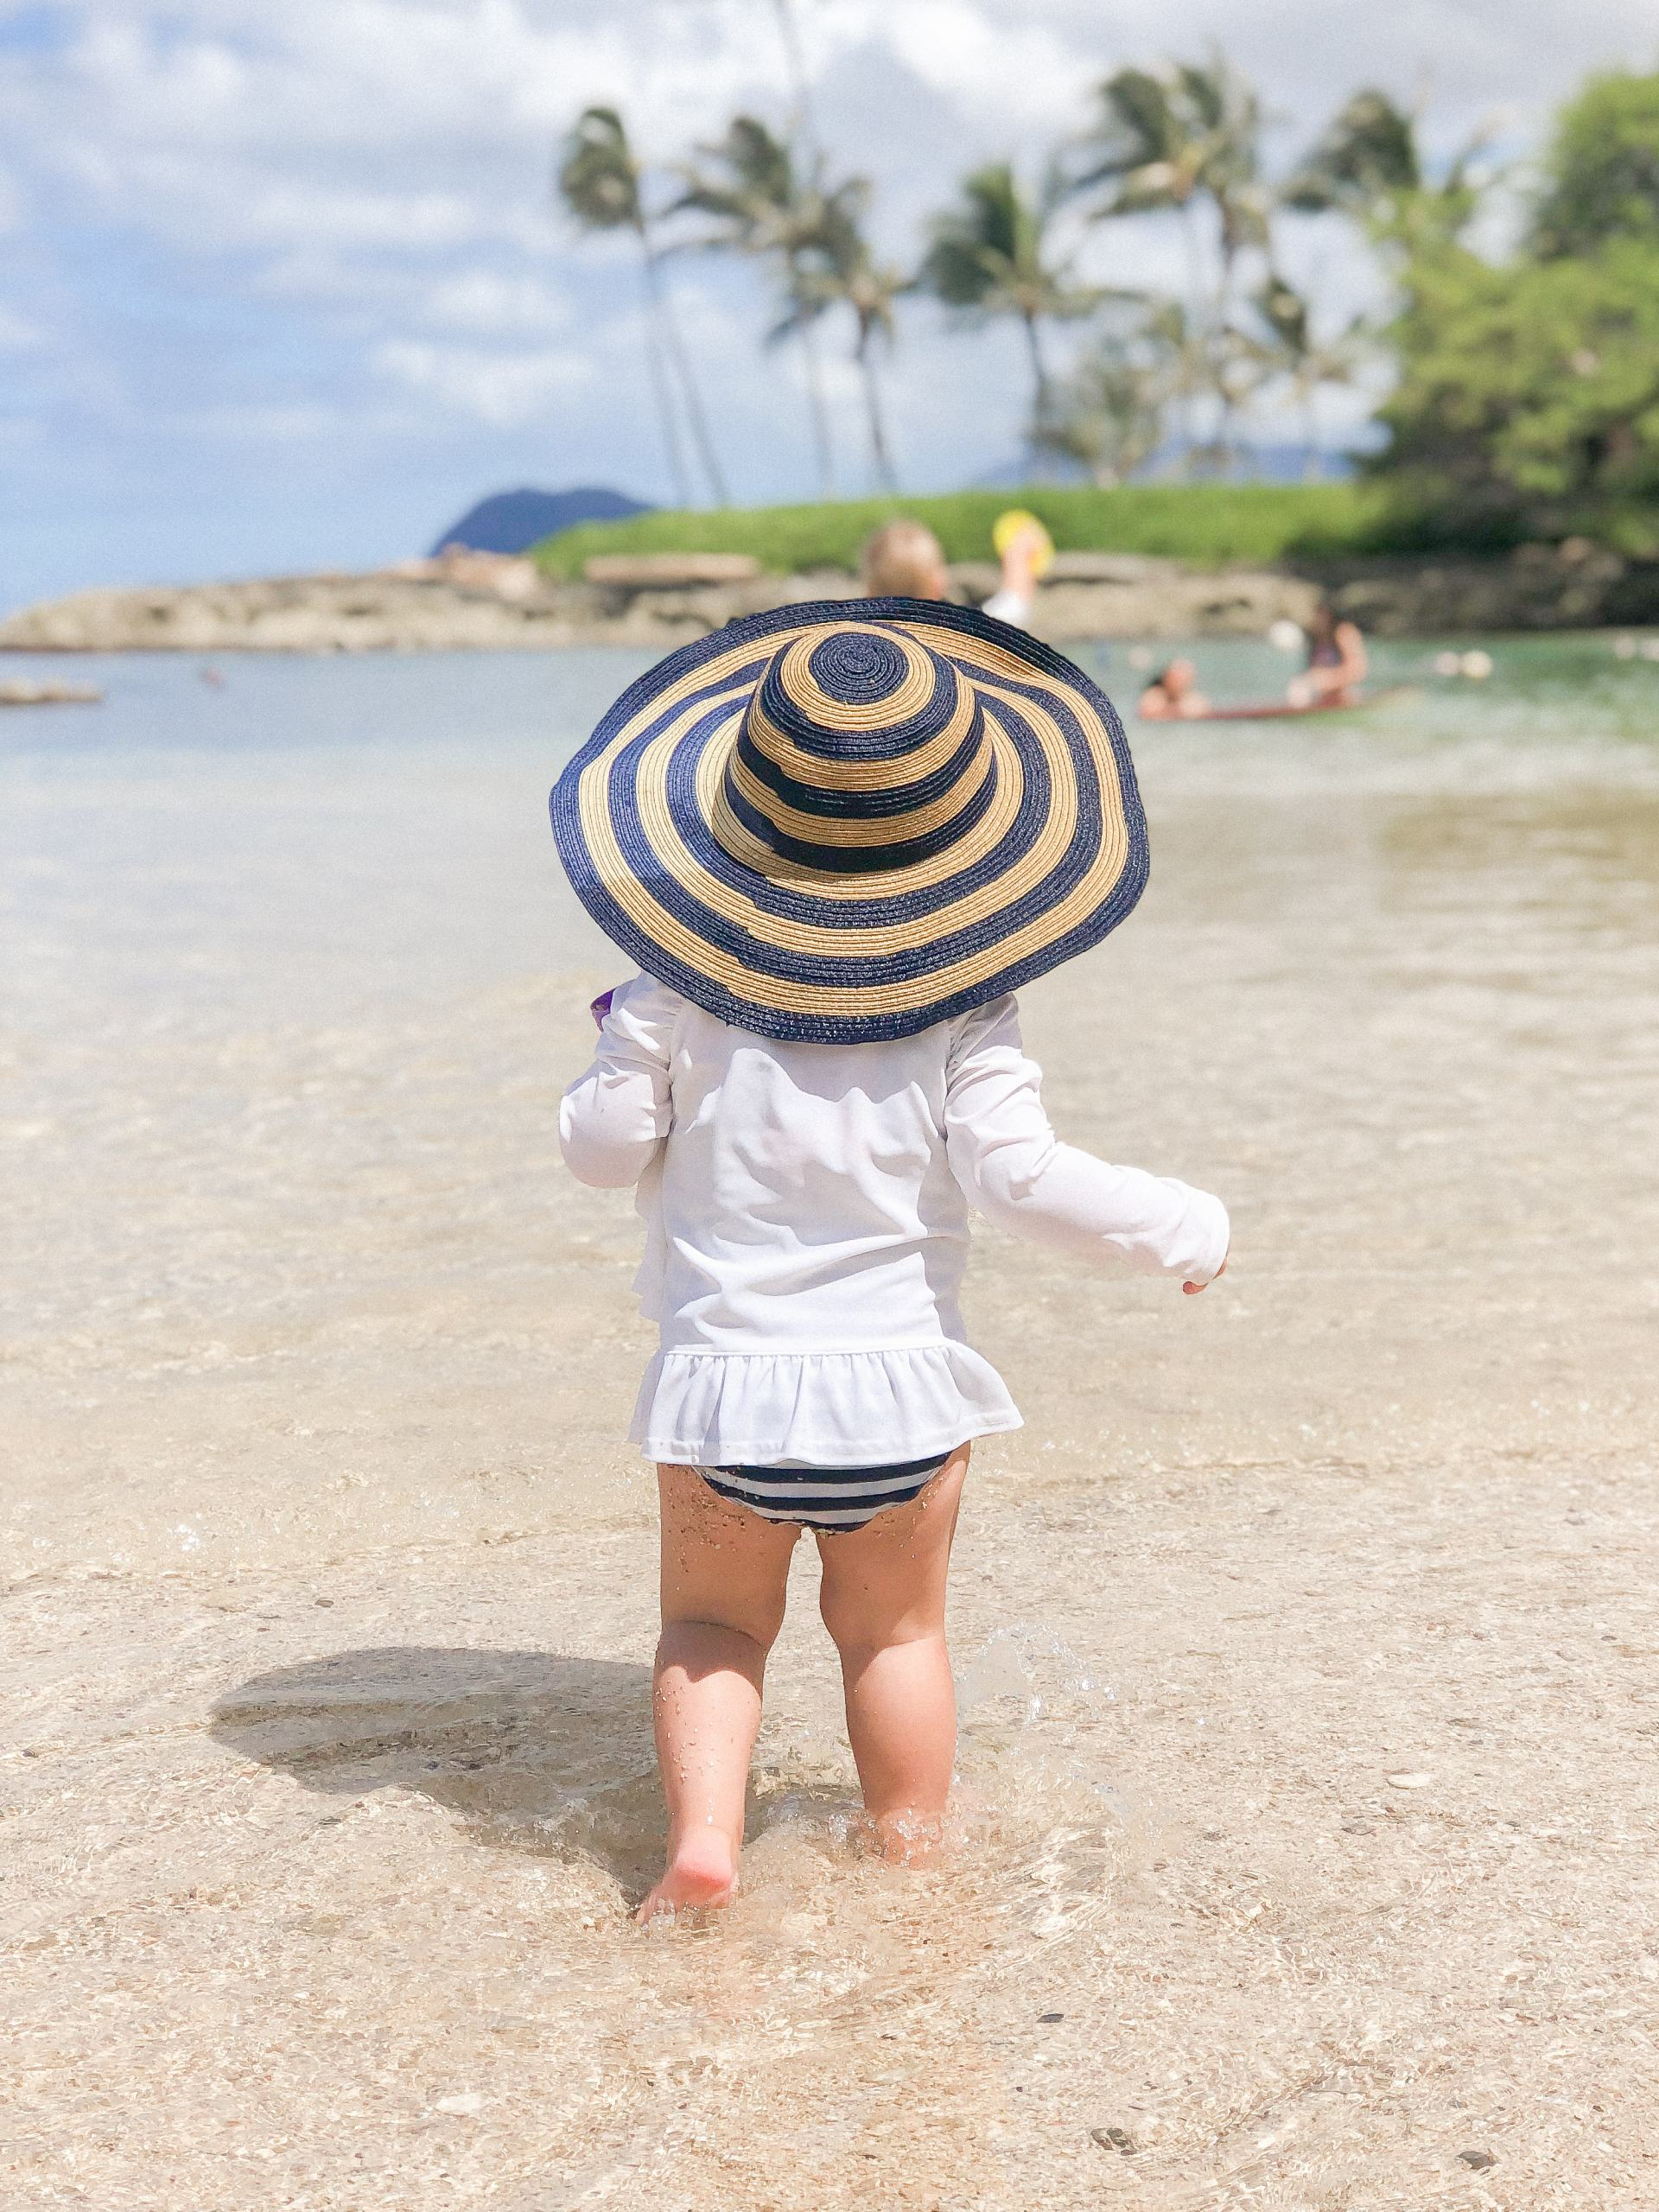 Paradise Cove Lagoon - toddler stripe sun hat - toddler friendly beach - best family beach on Oahu - kid friendly beaches in Hawaii - military family Hawaii - kid friendly activities in Hawaii - kid activities on Oahu - kid activities in Honolulu - toddler friendly Hawaii - Things for toddlers to do in Hawaii